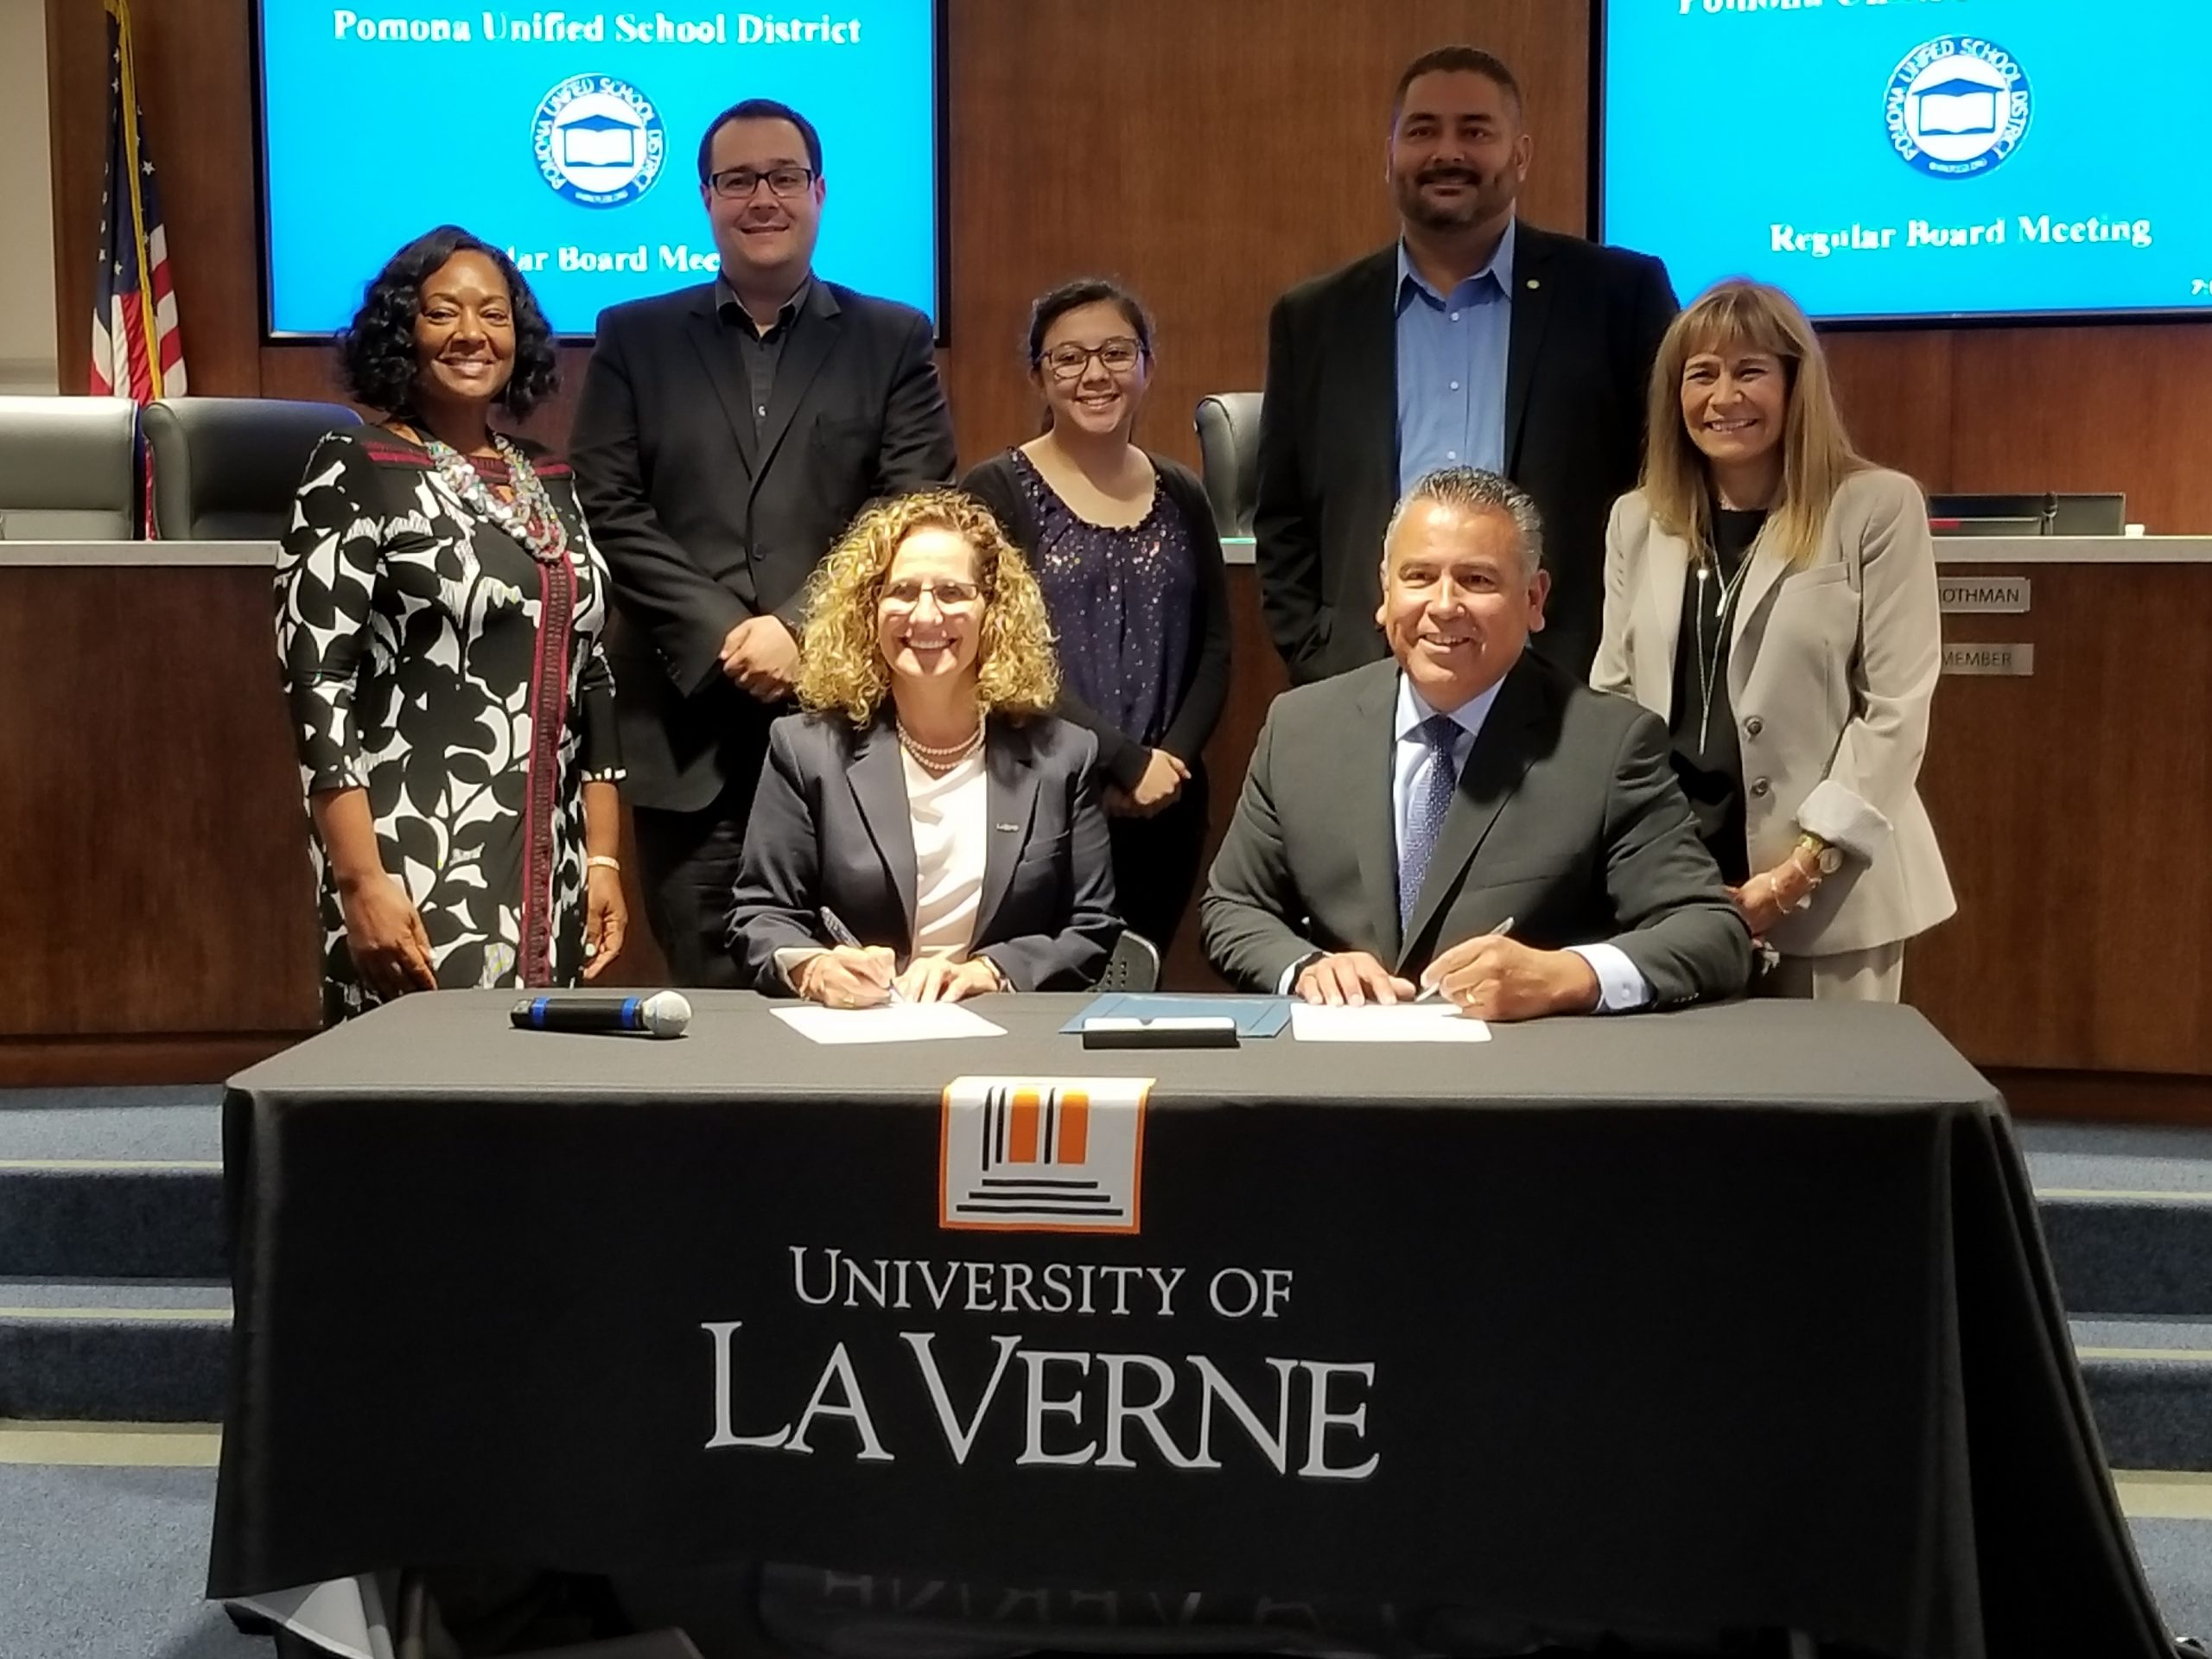 University Of La Verne, Pomona Unified To Partner On For Pomona Unified School District Calendar